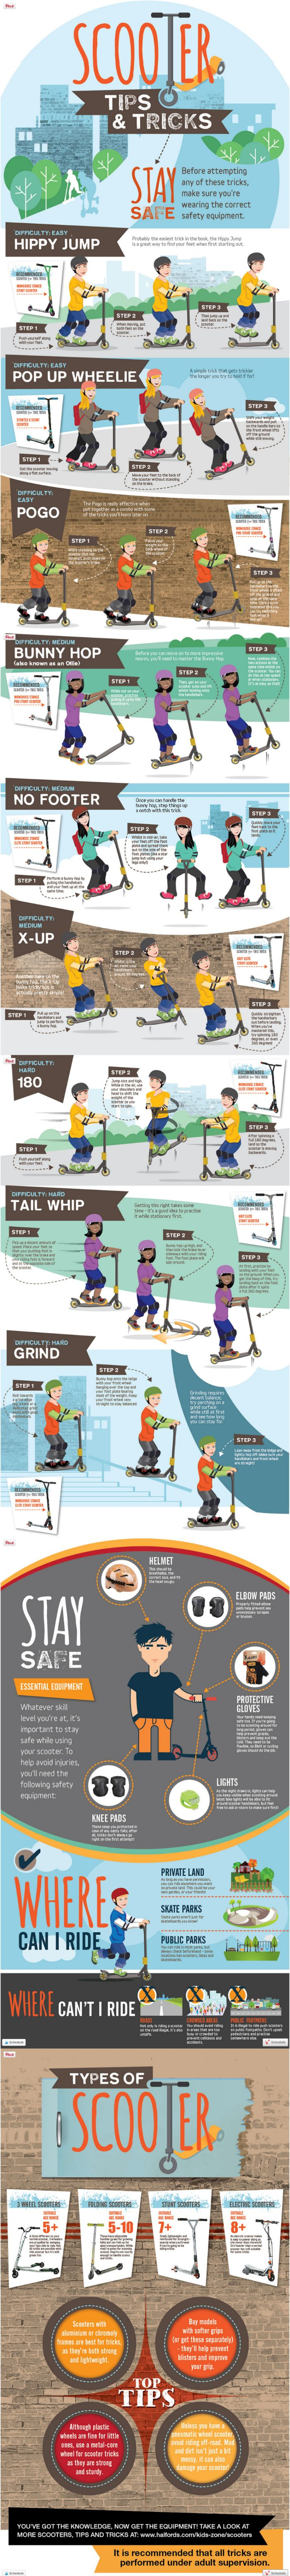 Over 10 Awesome Trick Scooter Safety Tips & Tricks   These are pretty much some of the best stunts to teach your children on their stunt scooters.